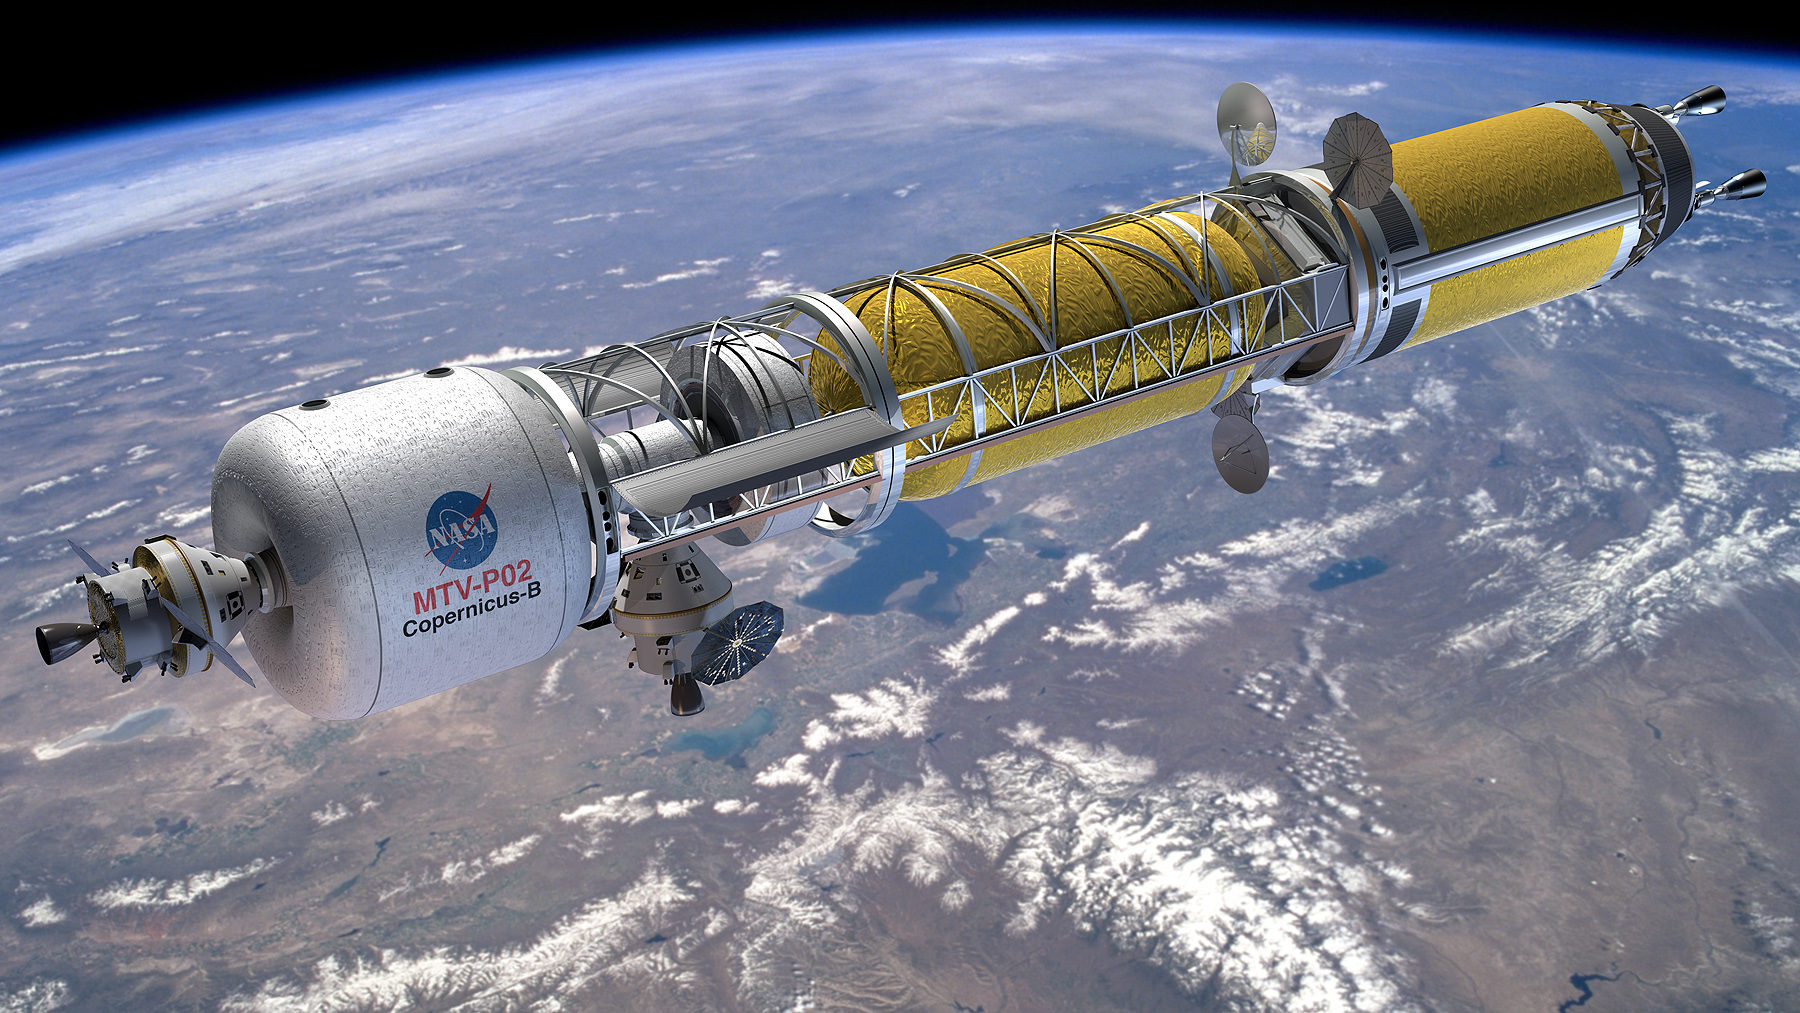 Orion_docked_to_Mars_Transfer_Vehicle.jpg